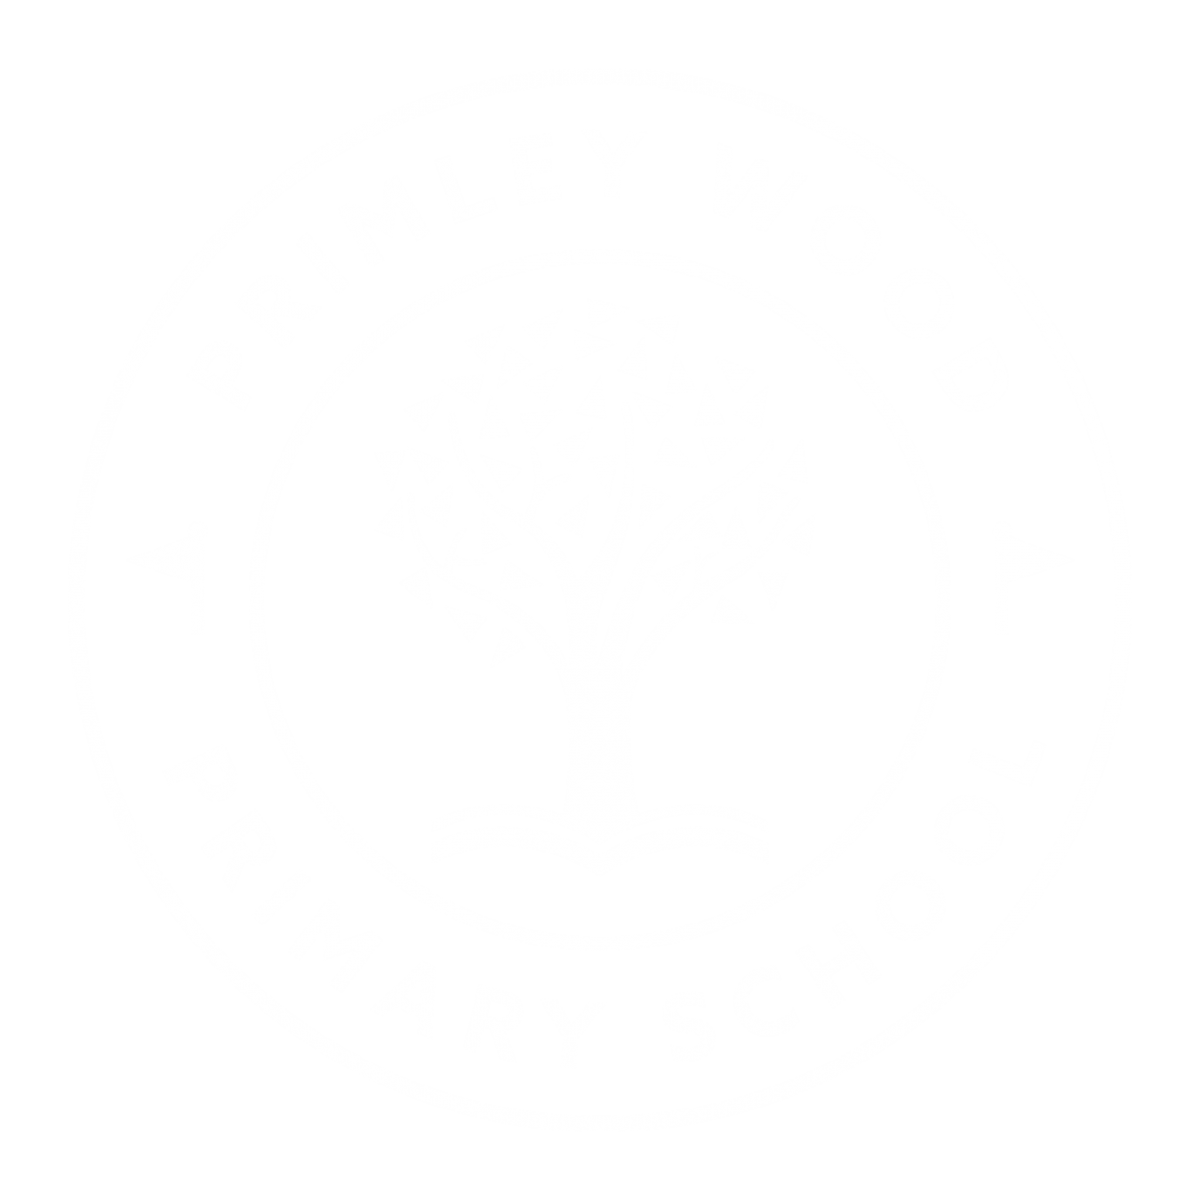 Primley Wood Primary School